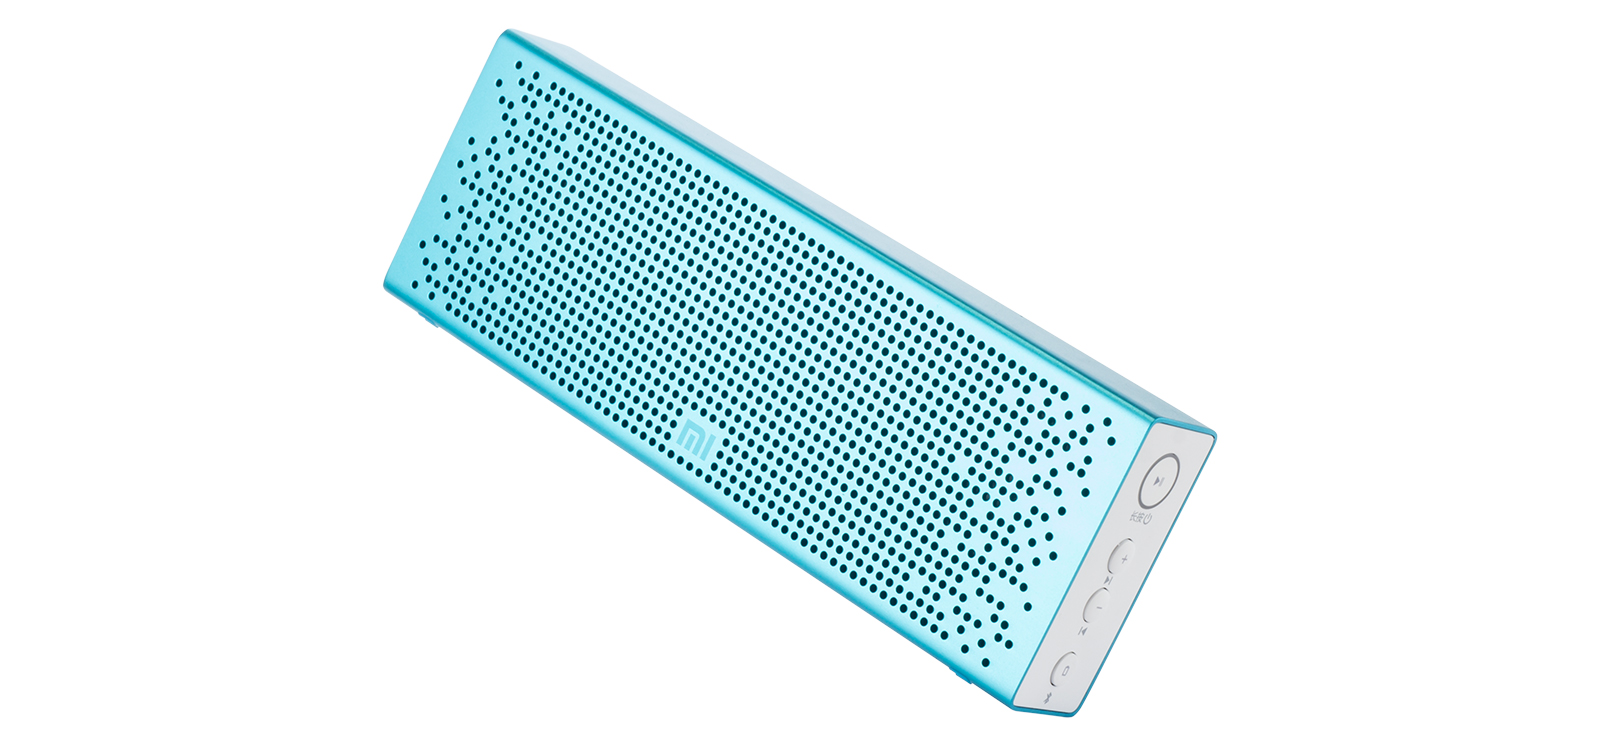 Портативная колонка Xiaomi Mi Bluetooth Speaker Blue liberty project lp 028 blue портативная bluetooth колонка